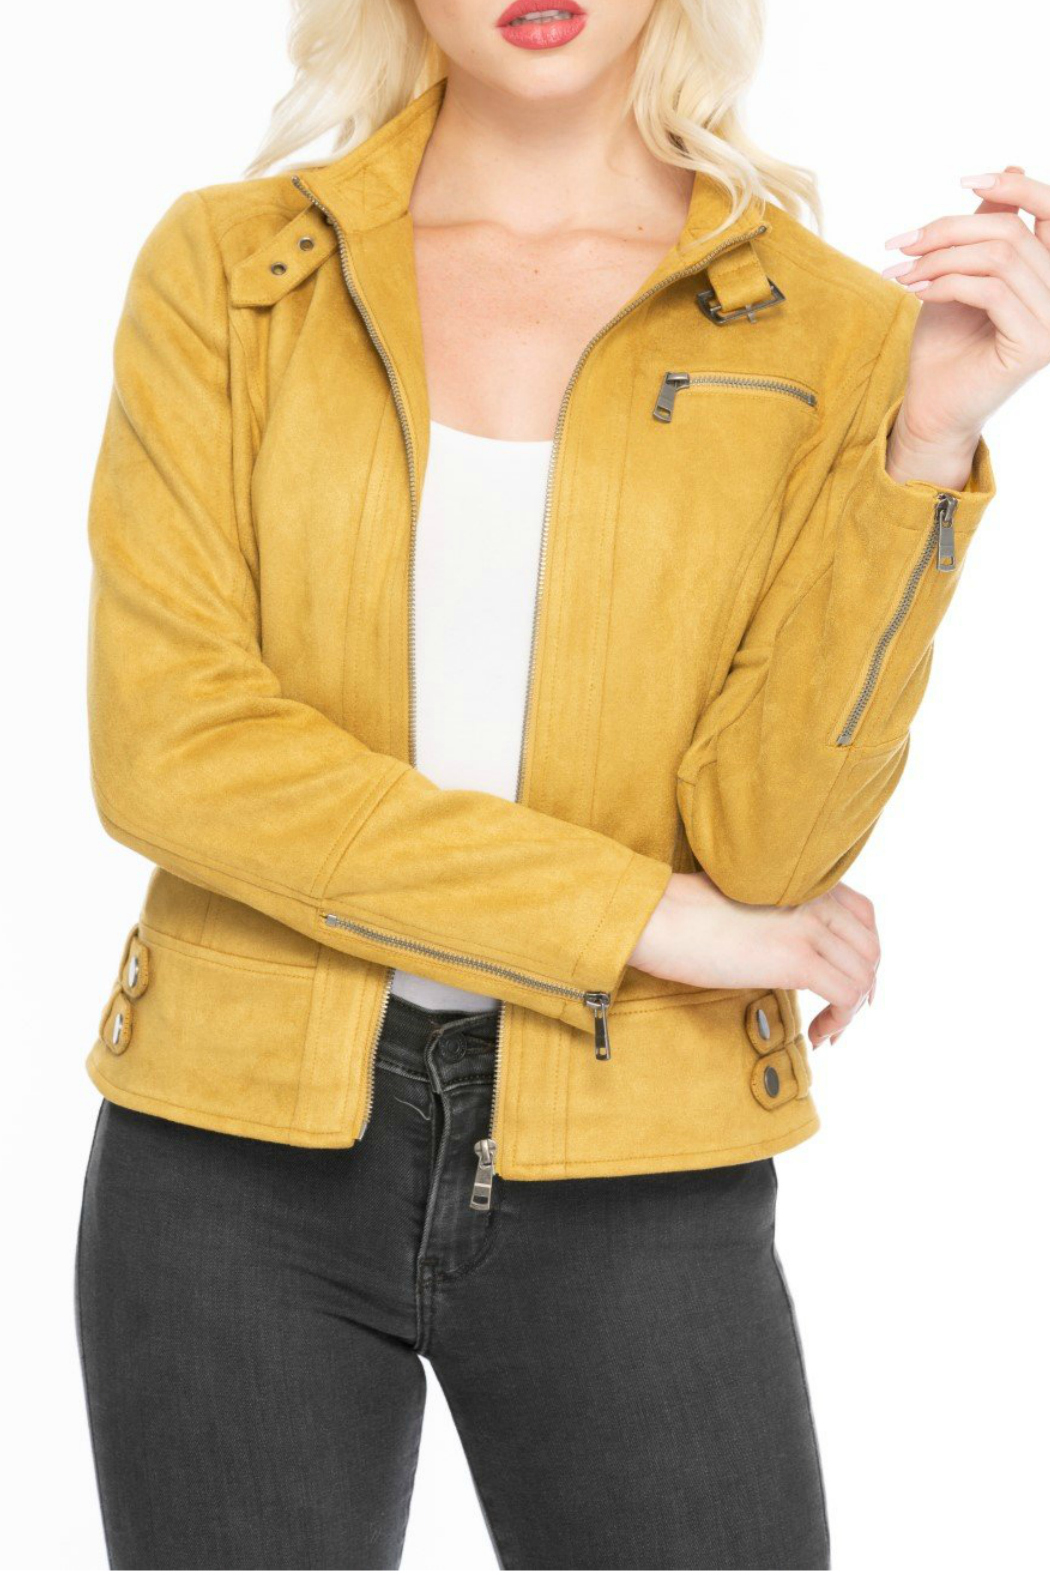 Coalition Well suede jacket - Main Image